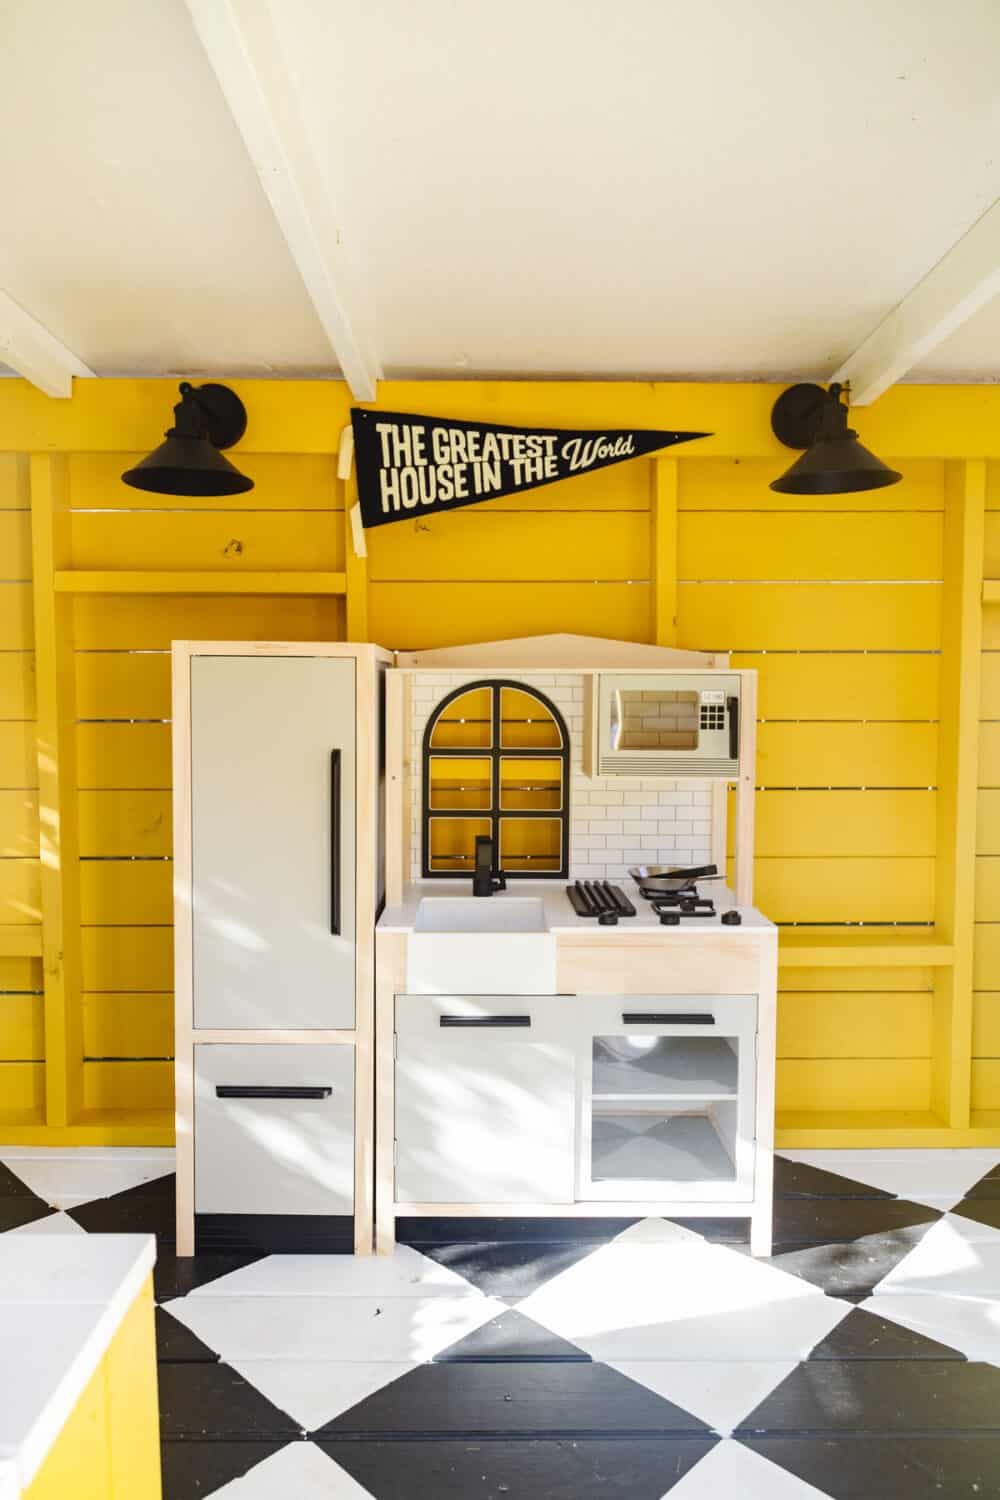 Small play kitchen inside an exterior playhouse